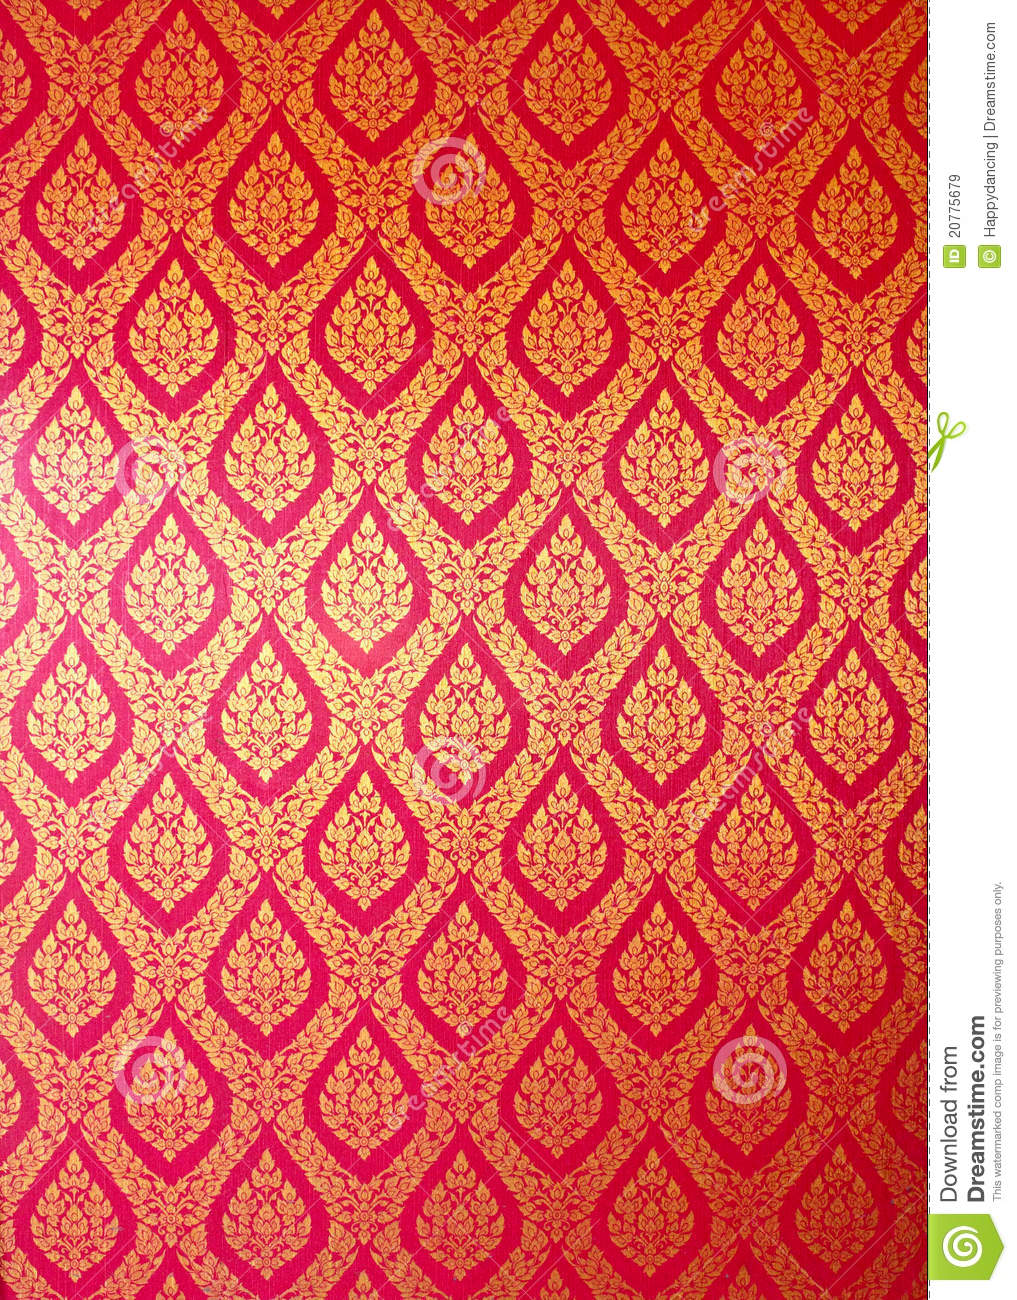 Thai Design Wallpaper : Thai art wall pattern royalty free stock images image